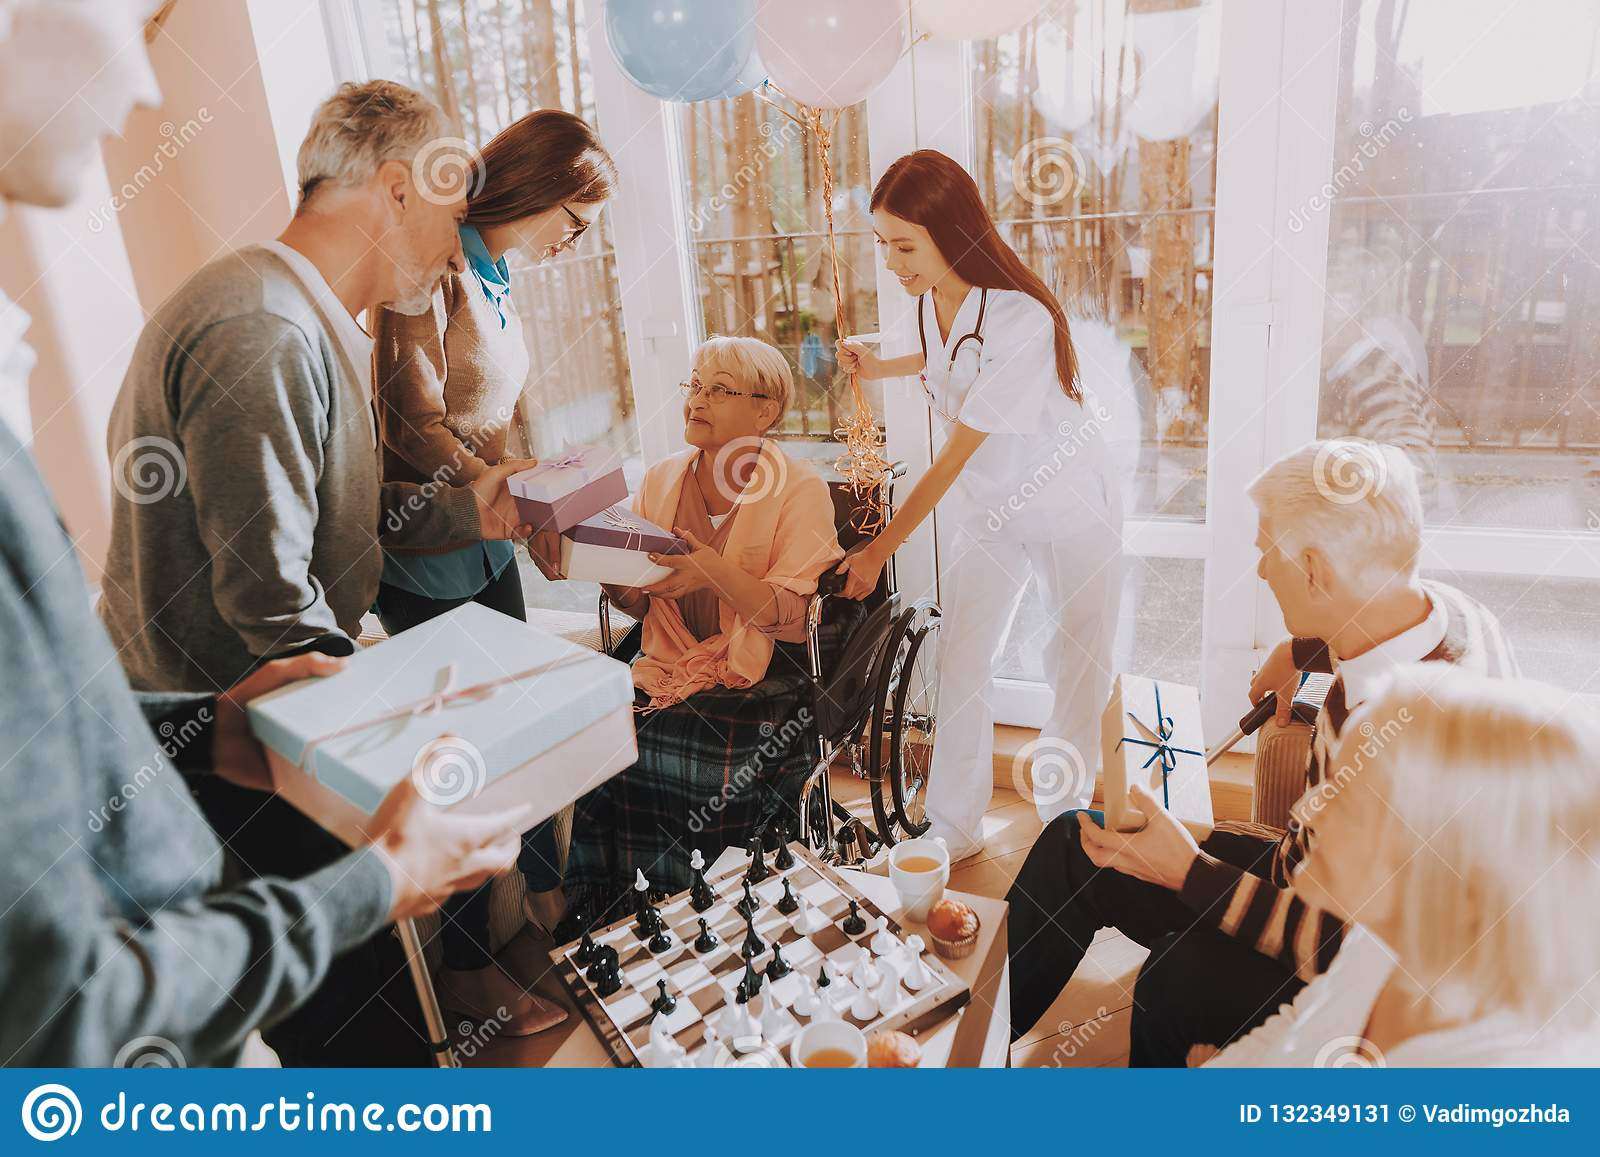 Guests Give Gifts To Elderly Woman Birthday Party Stock Image